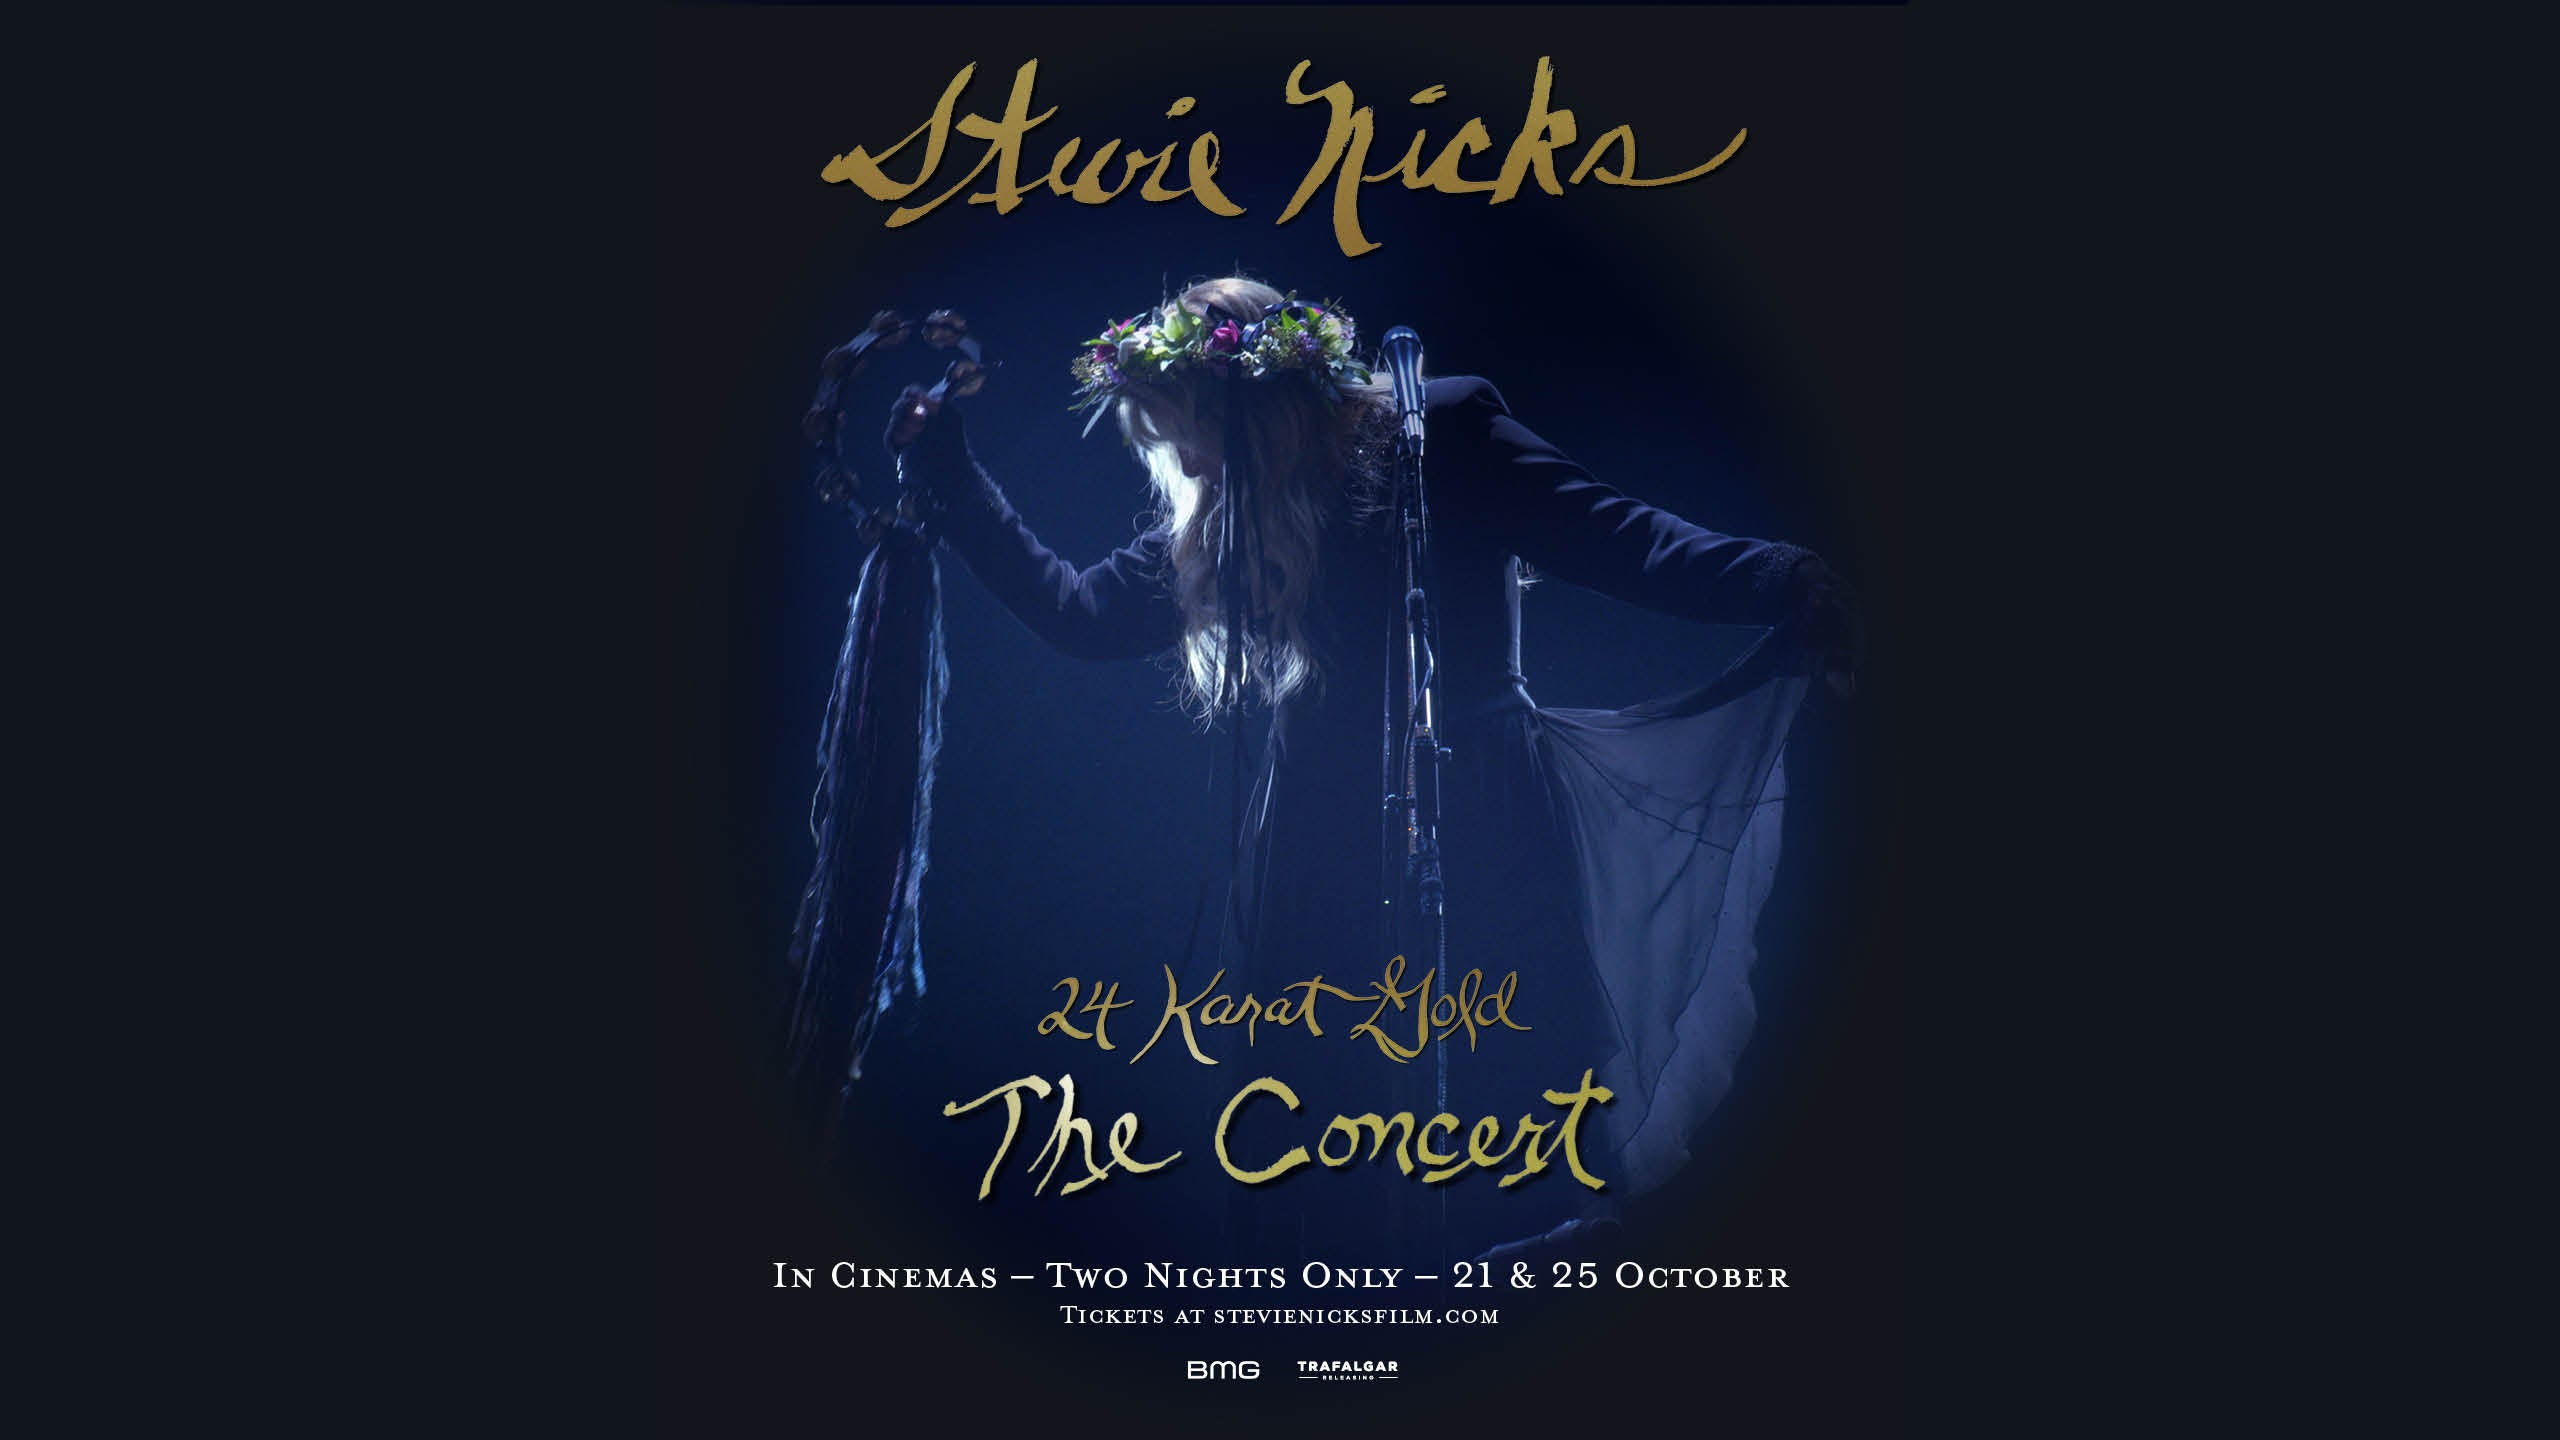 STEVIE NICKS 24 KARAT GOLD THE CONCERT IN CINEMAS WORLDWIDE OCTOBER 21 & 25